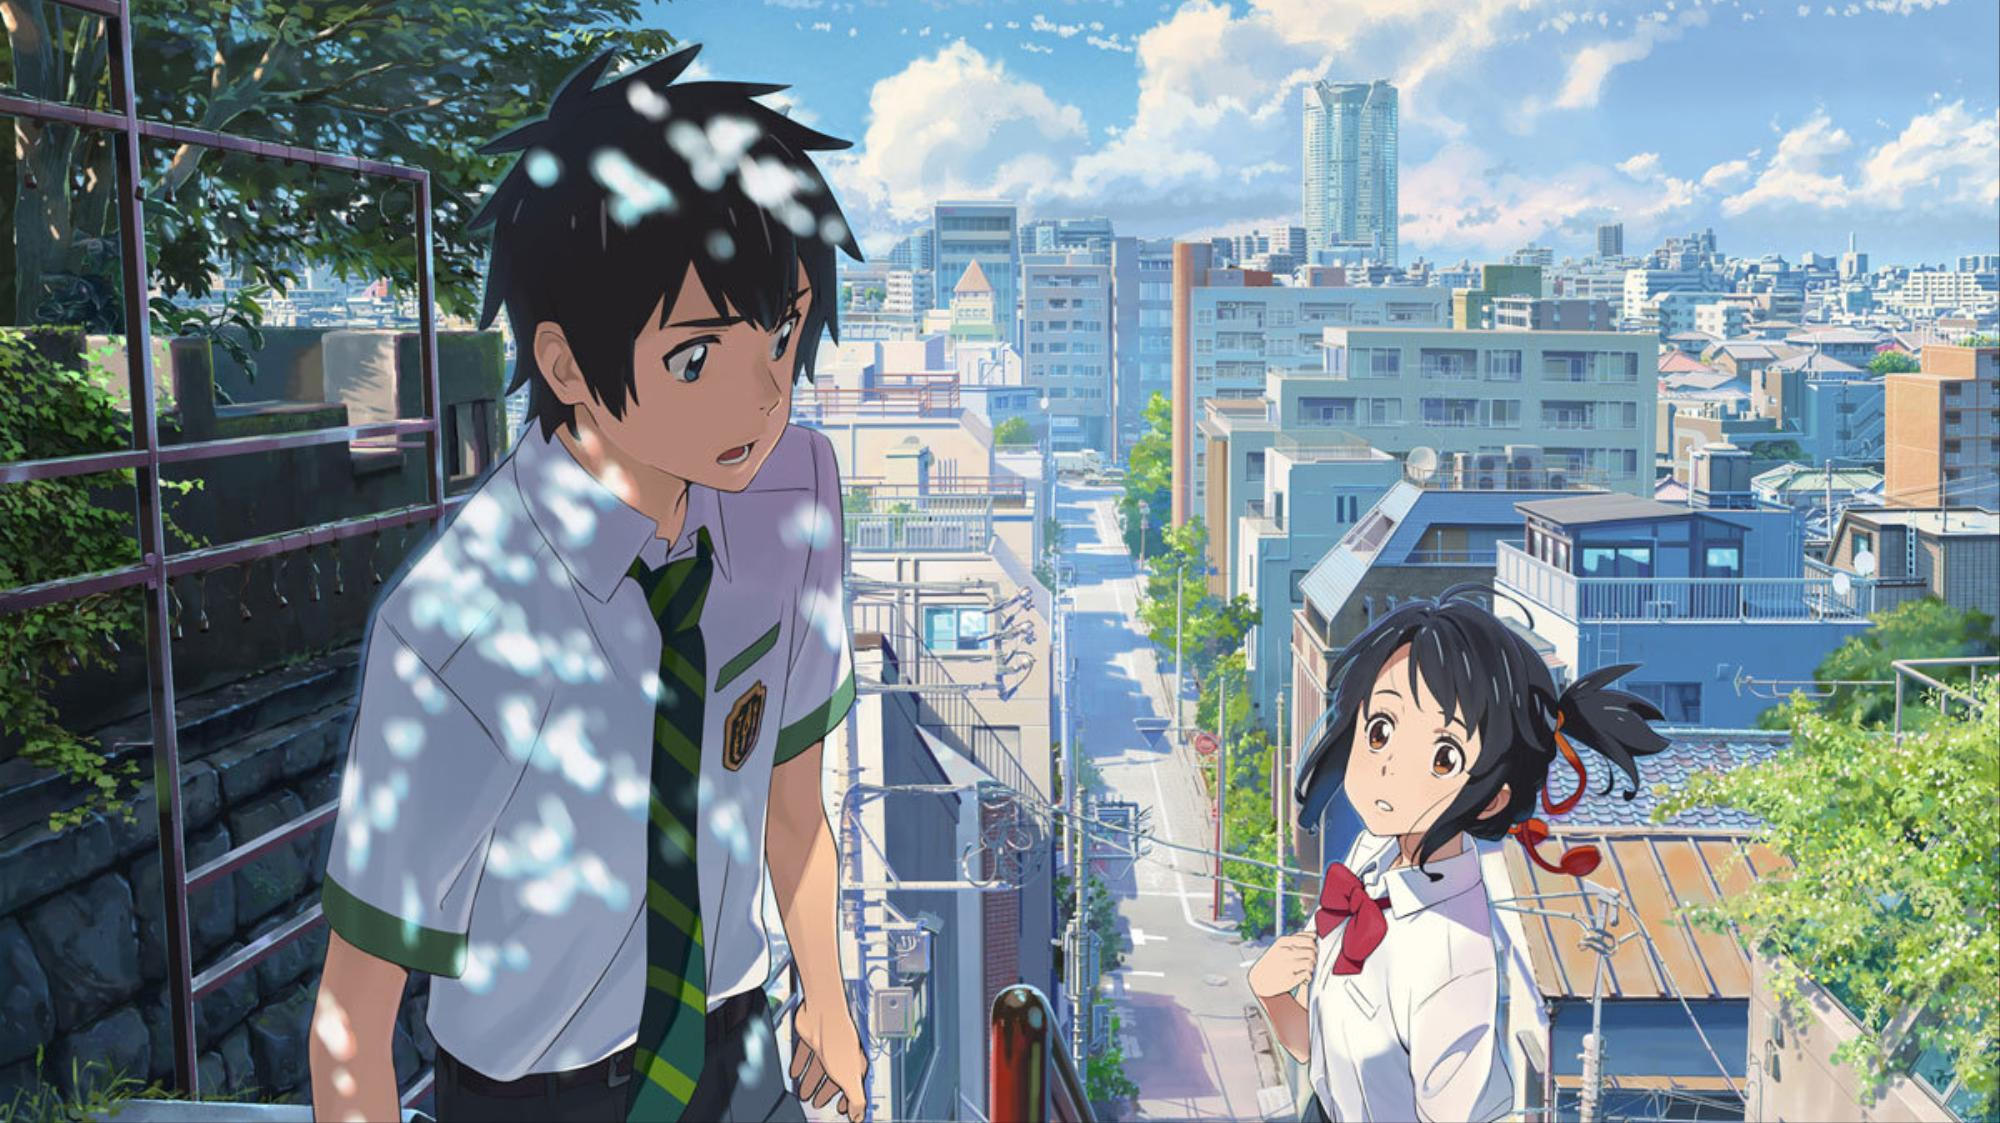 ​your name: the japanese anime about body-swapping teens